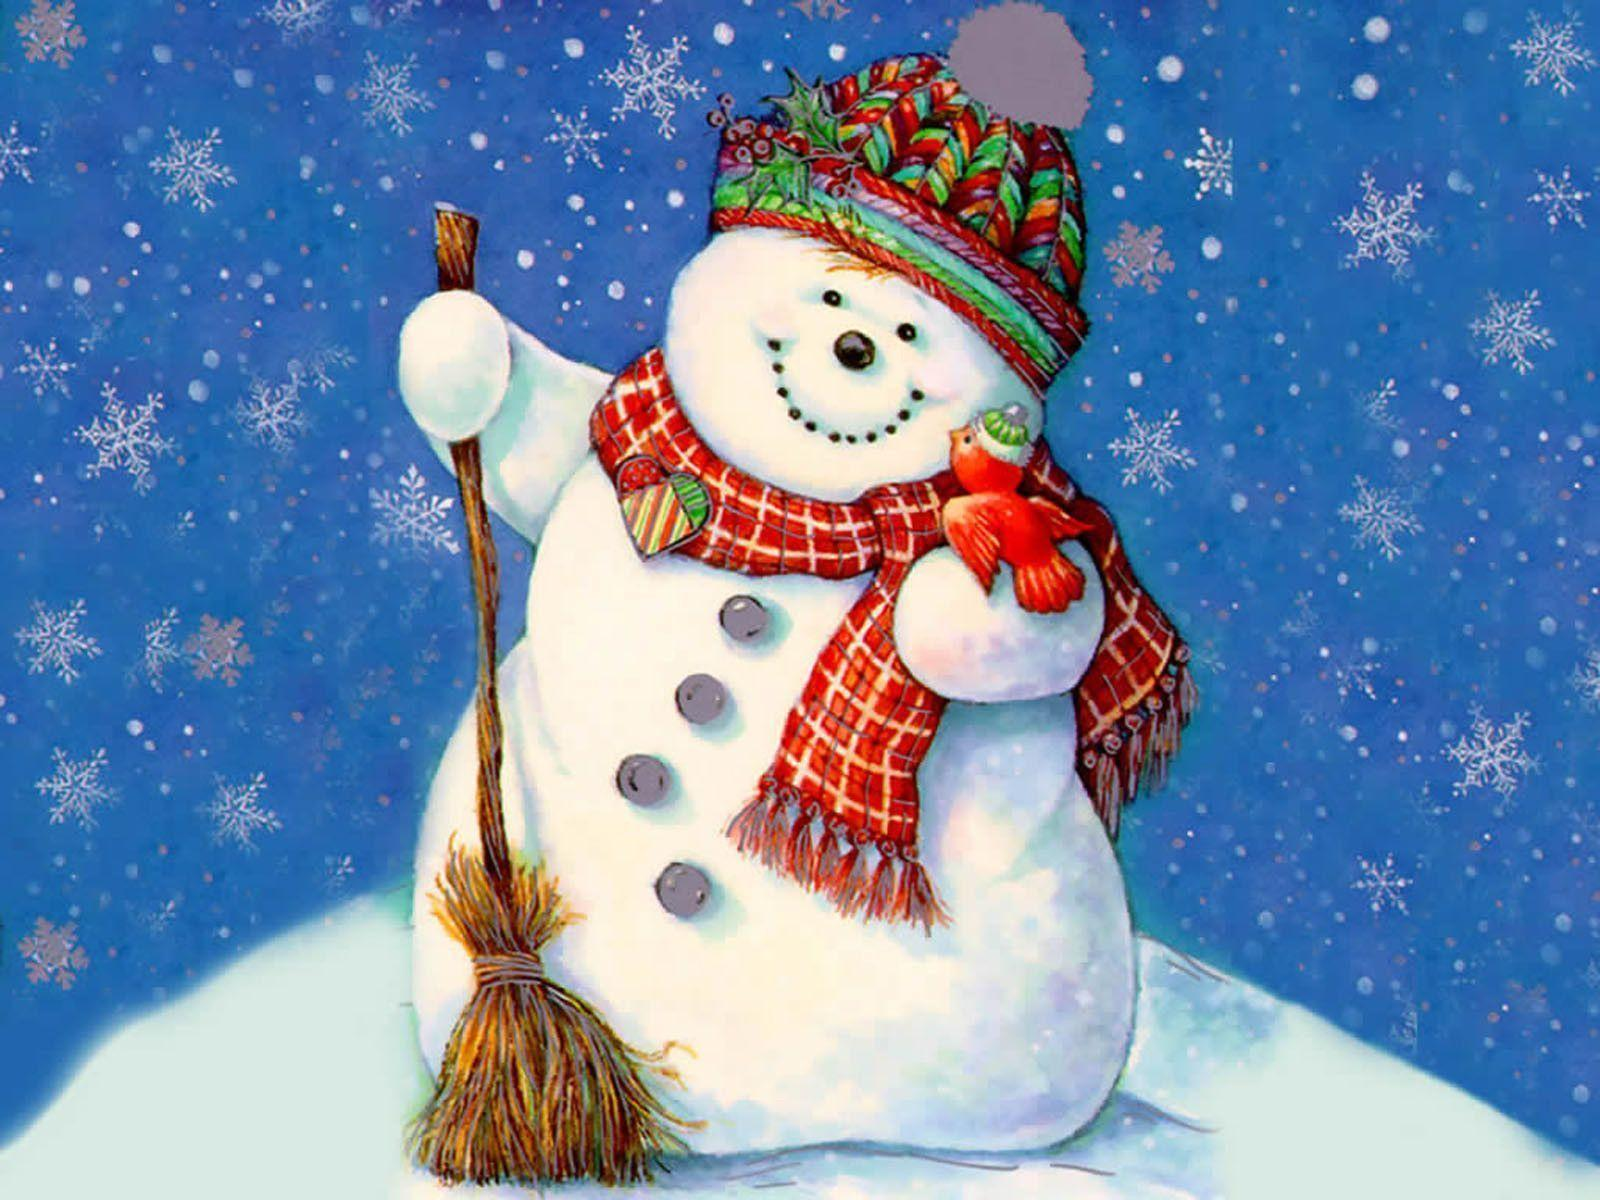 Christmas Snowman Wallpapers - Wallpaper Cave